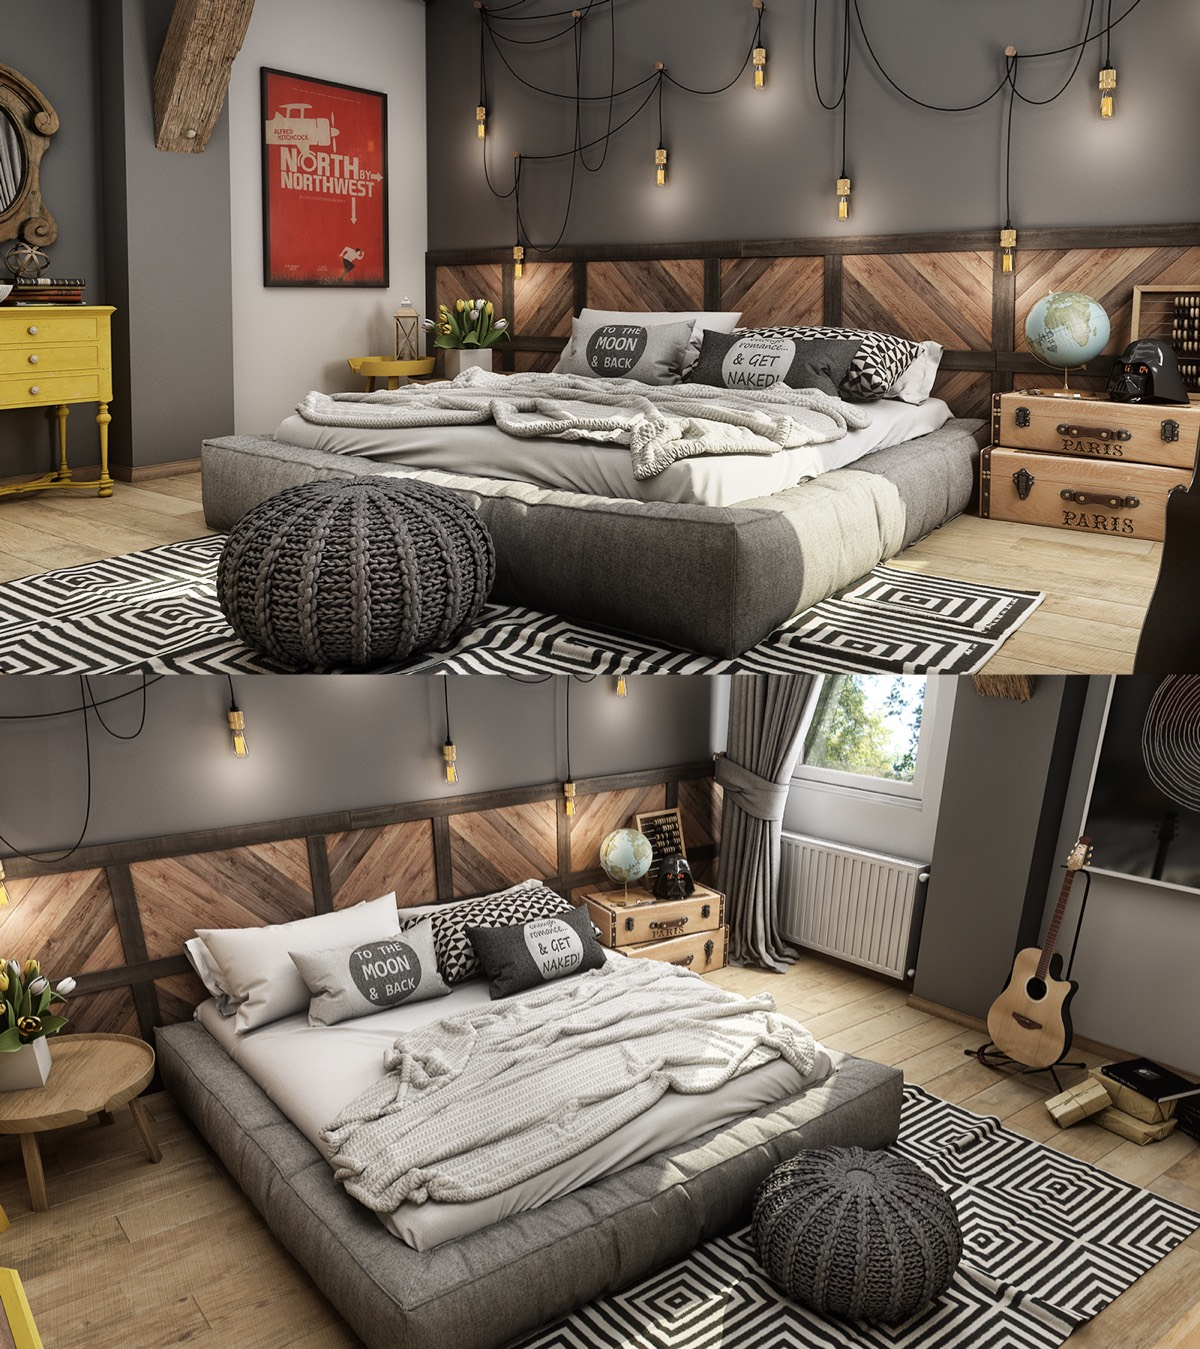 17 Cool Teen Room Ideas: 7 Teenage Bedroom Design Ideas Which Is Cool And Unique